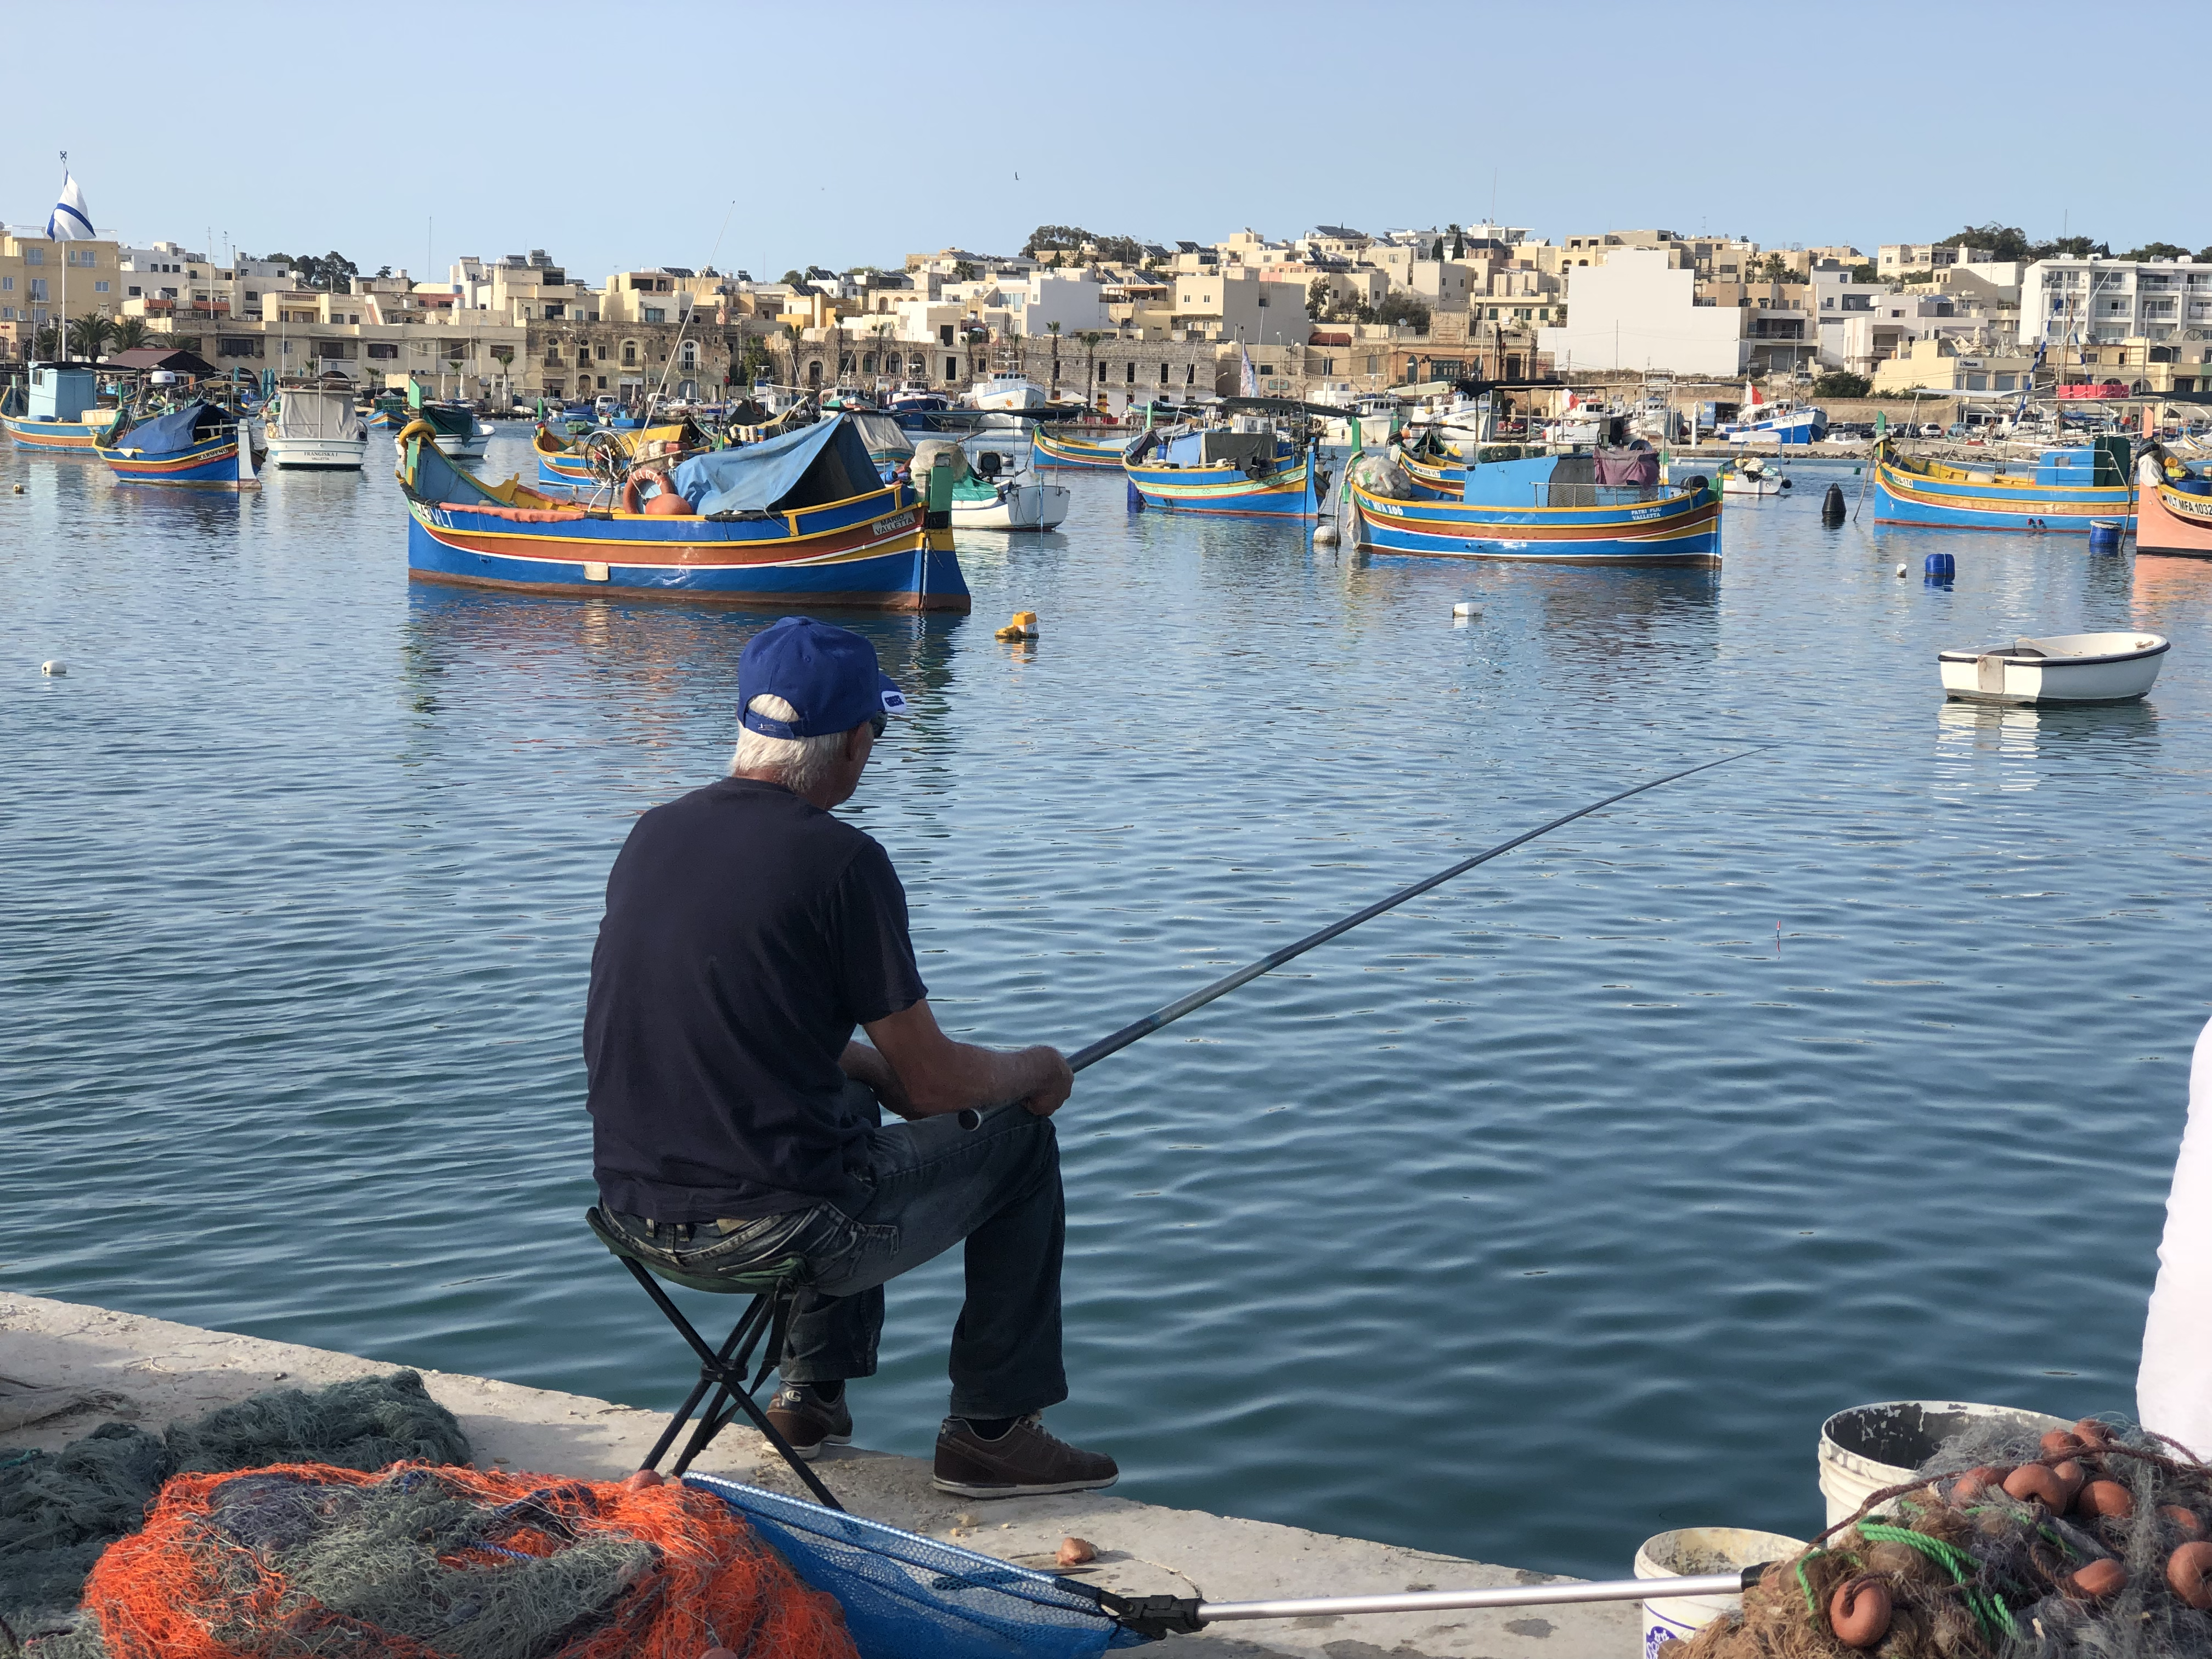 Leisurely life, sitting on the dock of the bay, fishing all day in Marsaxlokk.